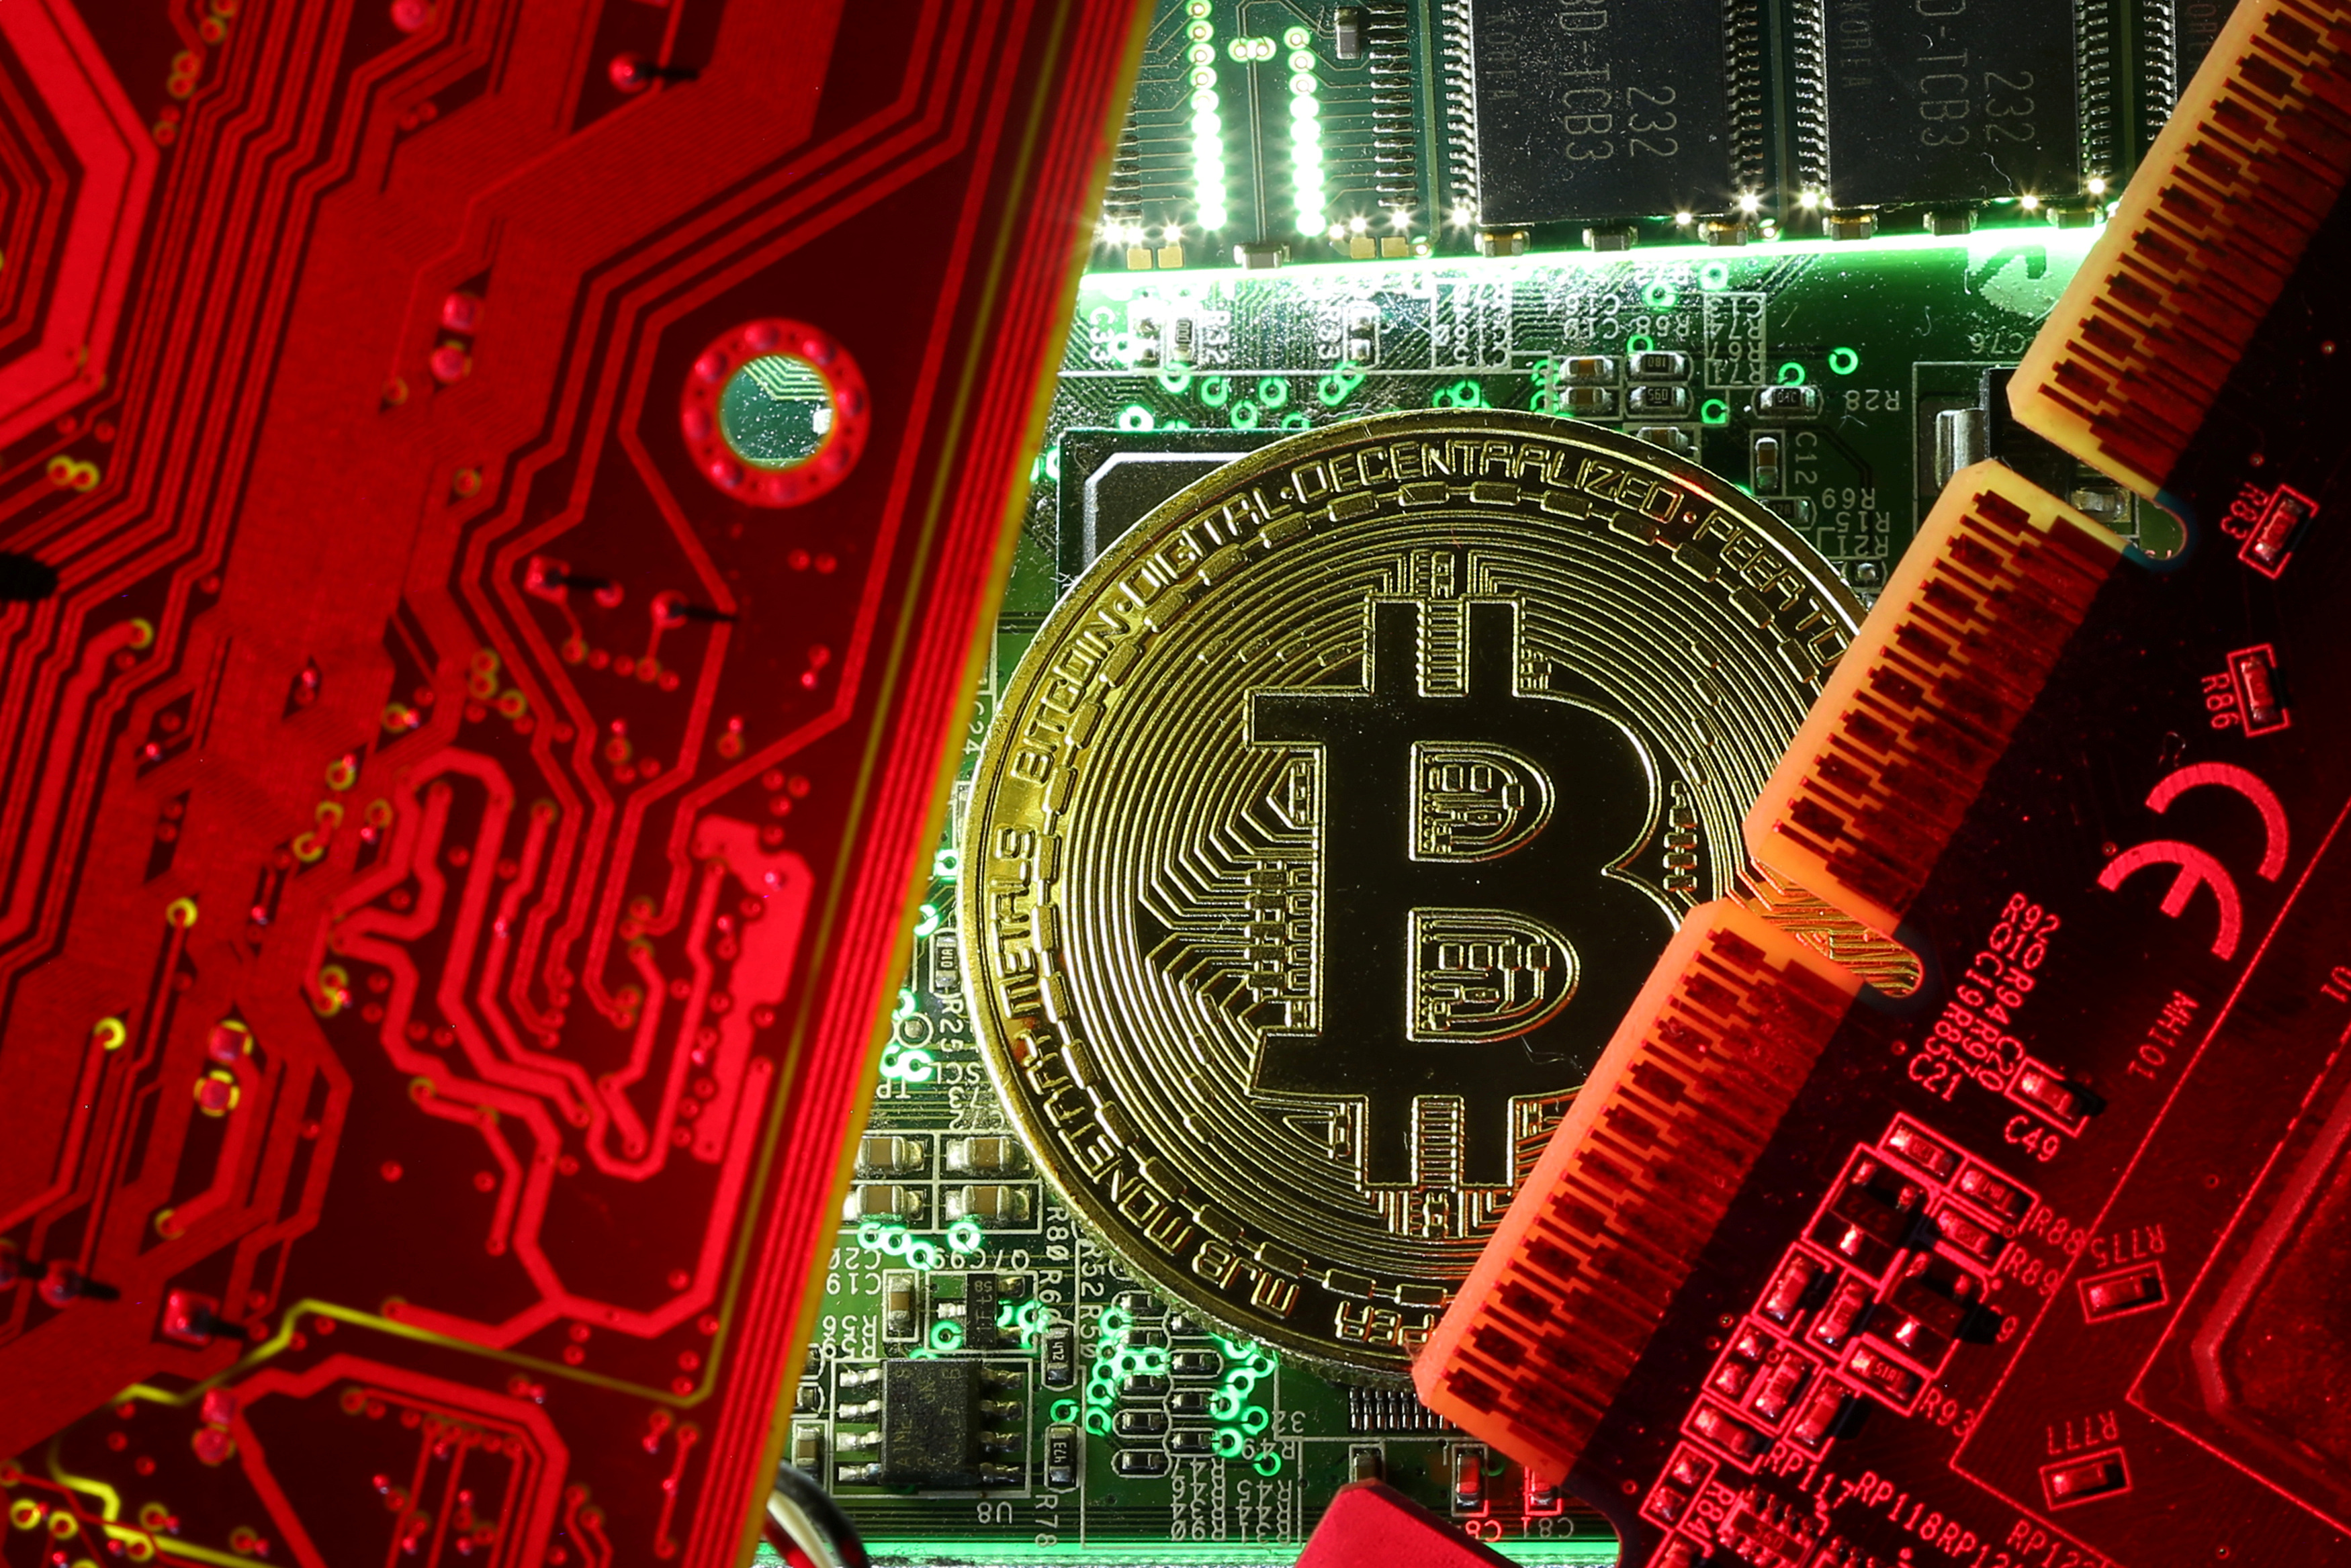 FILE PHOTO: A coin representing the bitcoin cryptocurrency is seen on computer circuit boards in this illustration picture